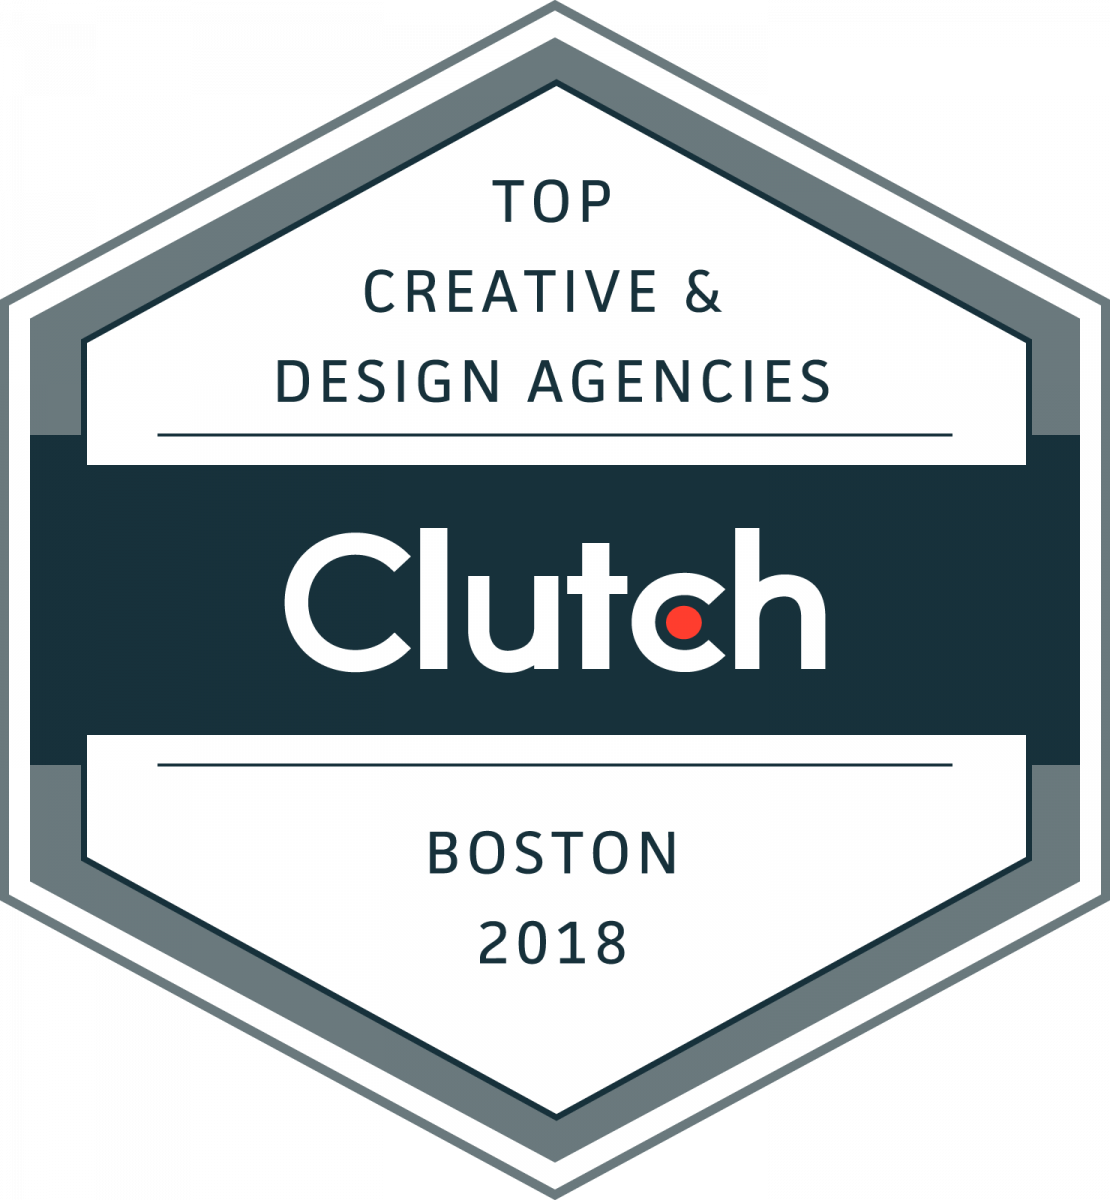 Top Creative & Design Agencies Boston Badge 2018